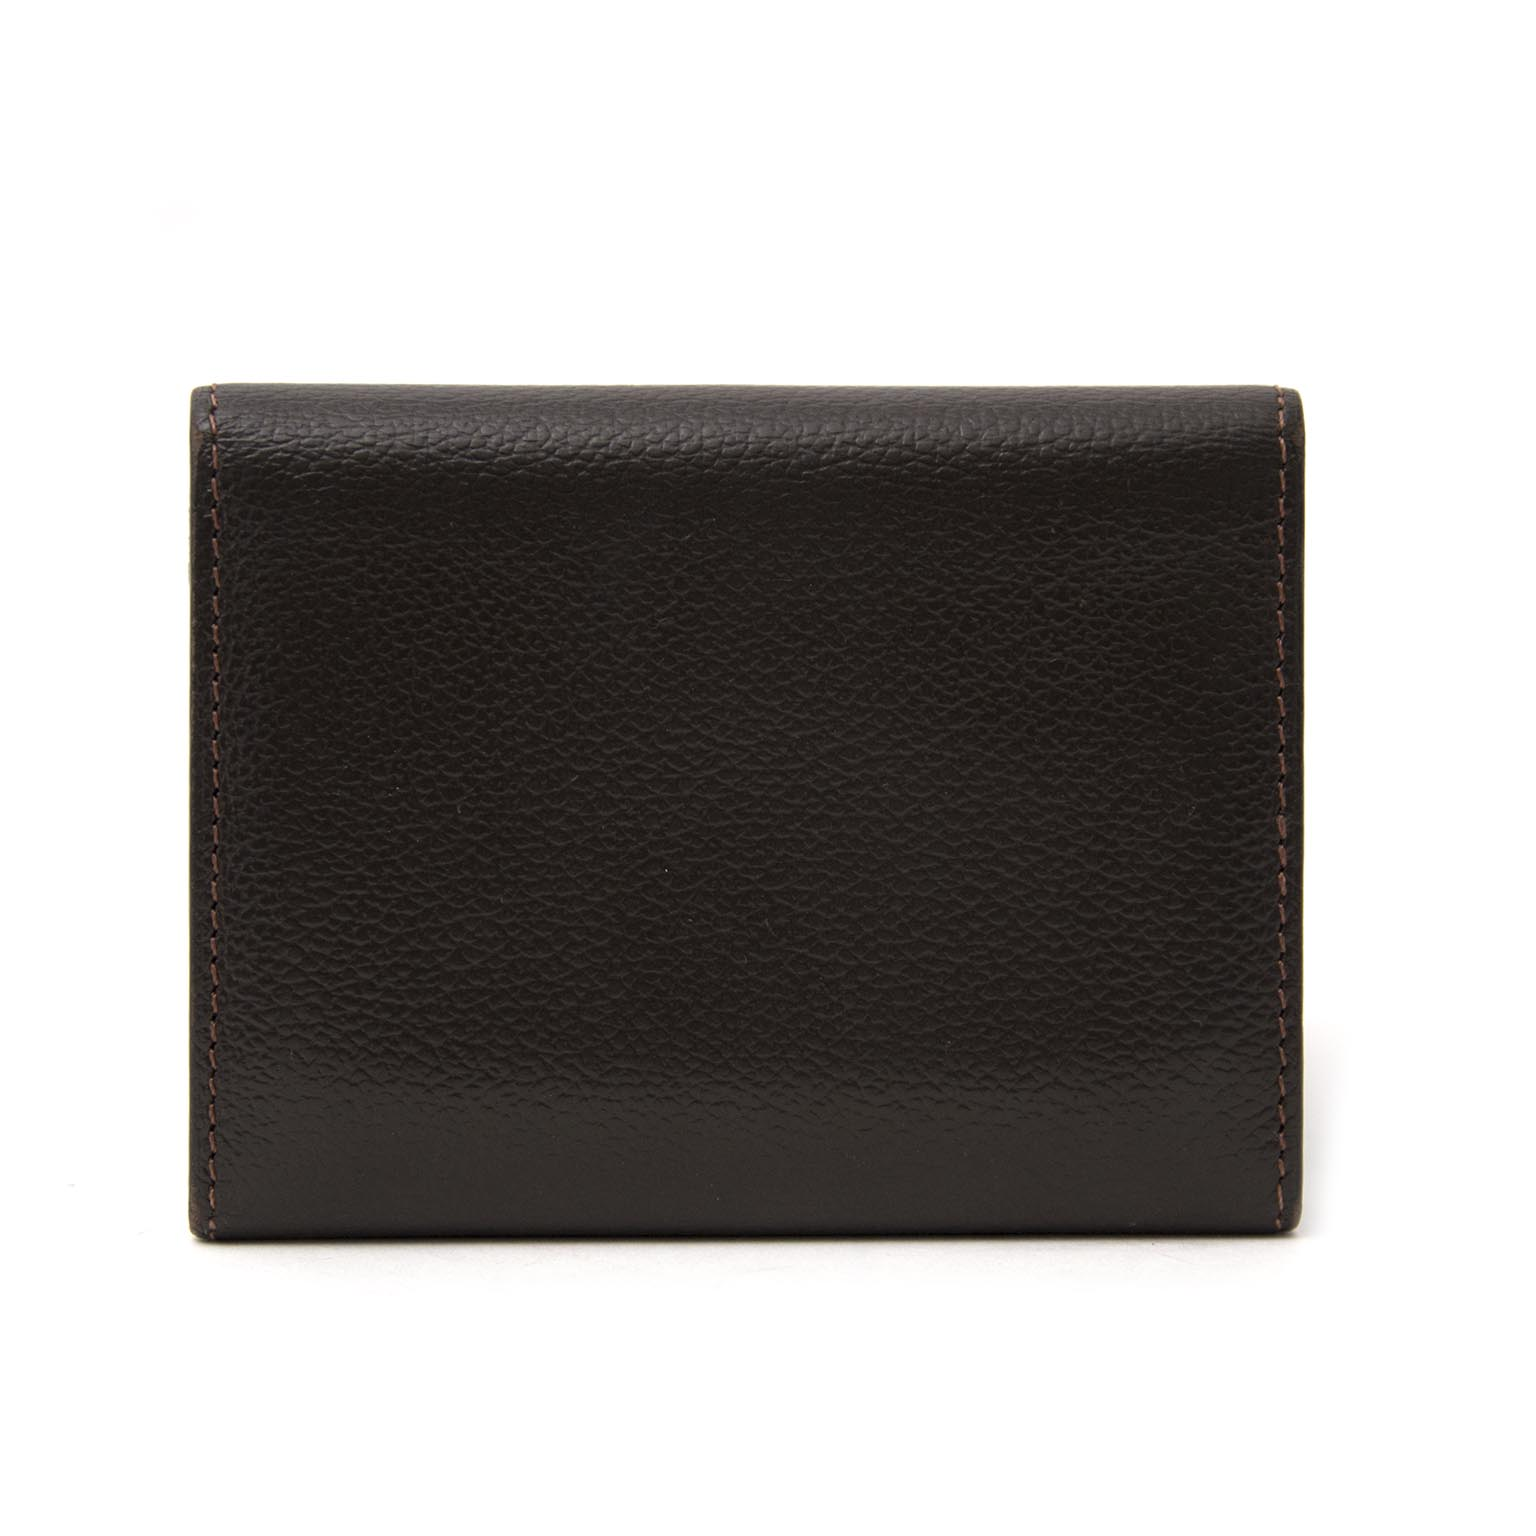 Buy your authentic Delvaux Brown Pebbled Leather Card Holder Flap Wallet